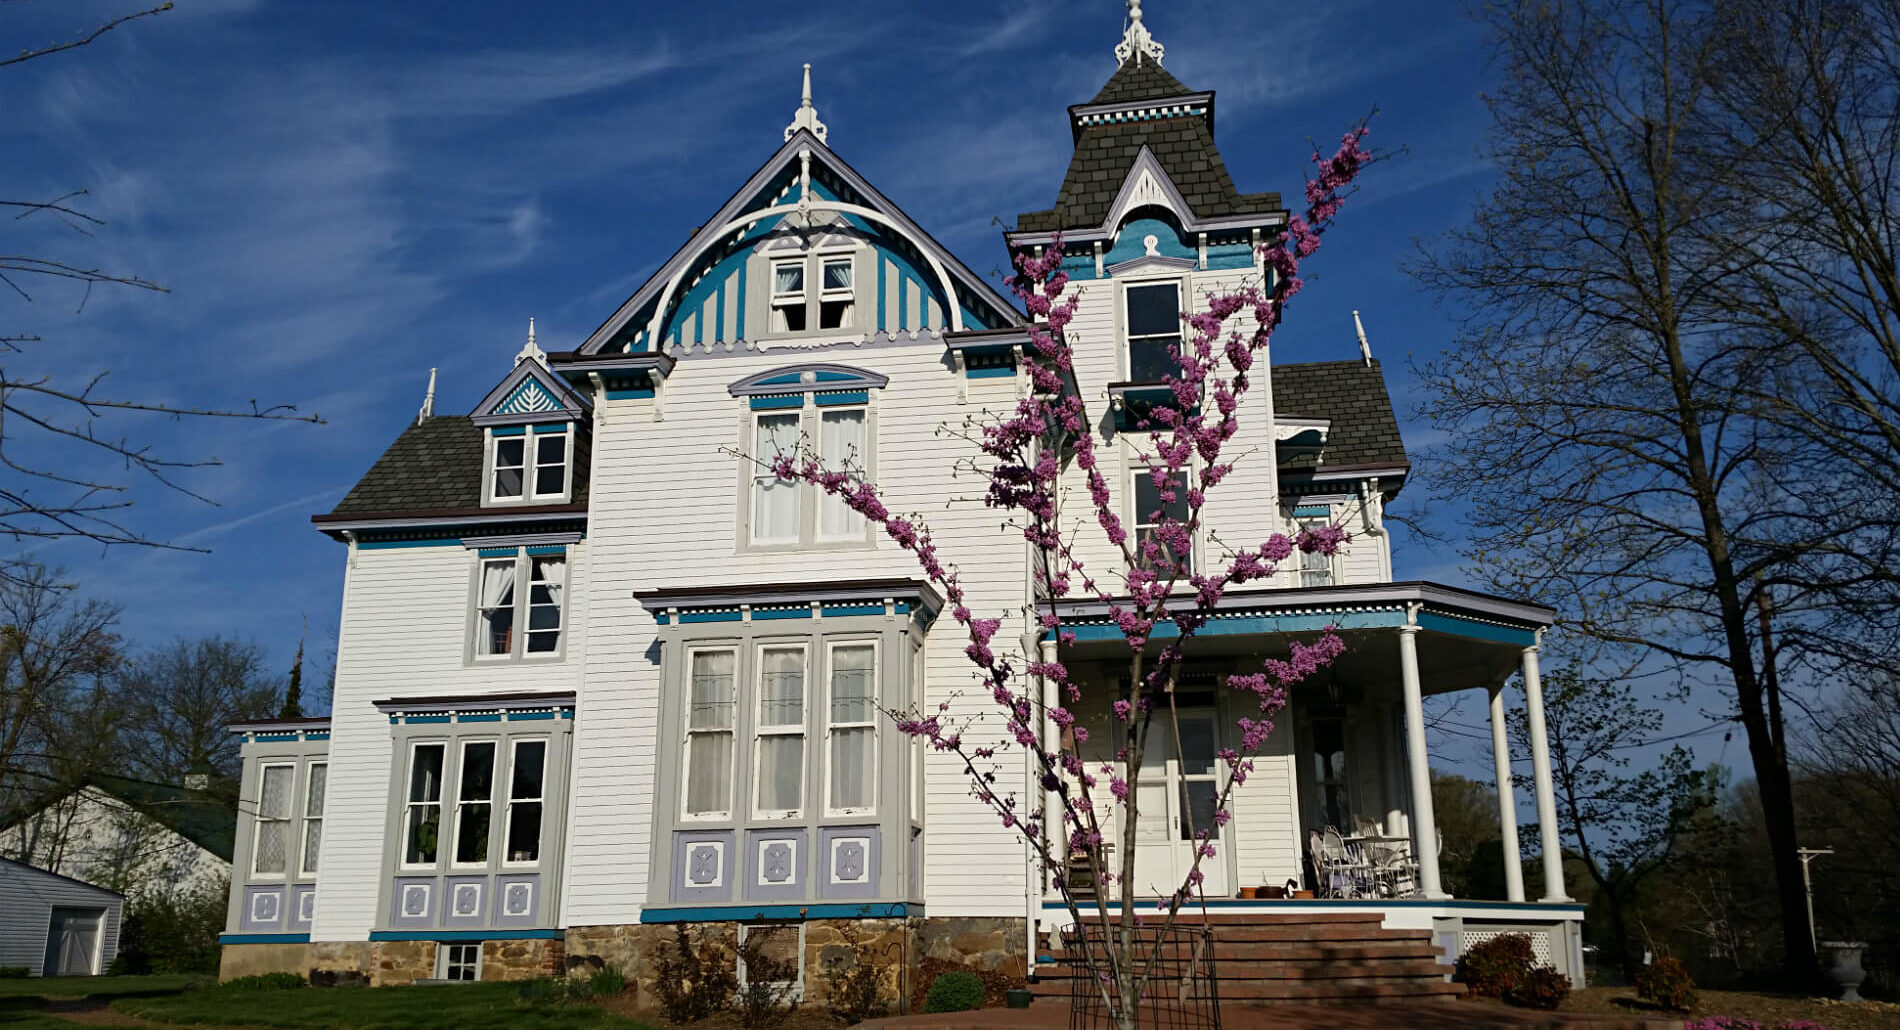 Large white Victorian styled house with blue and grey detailing and black shingles